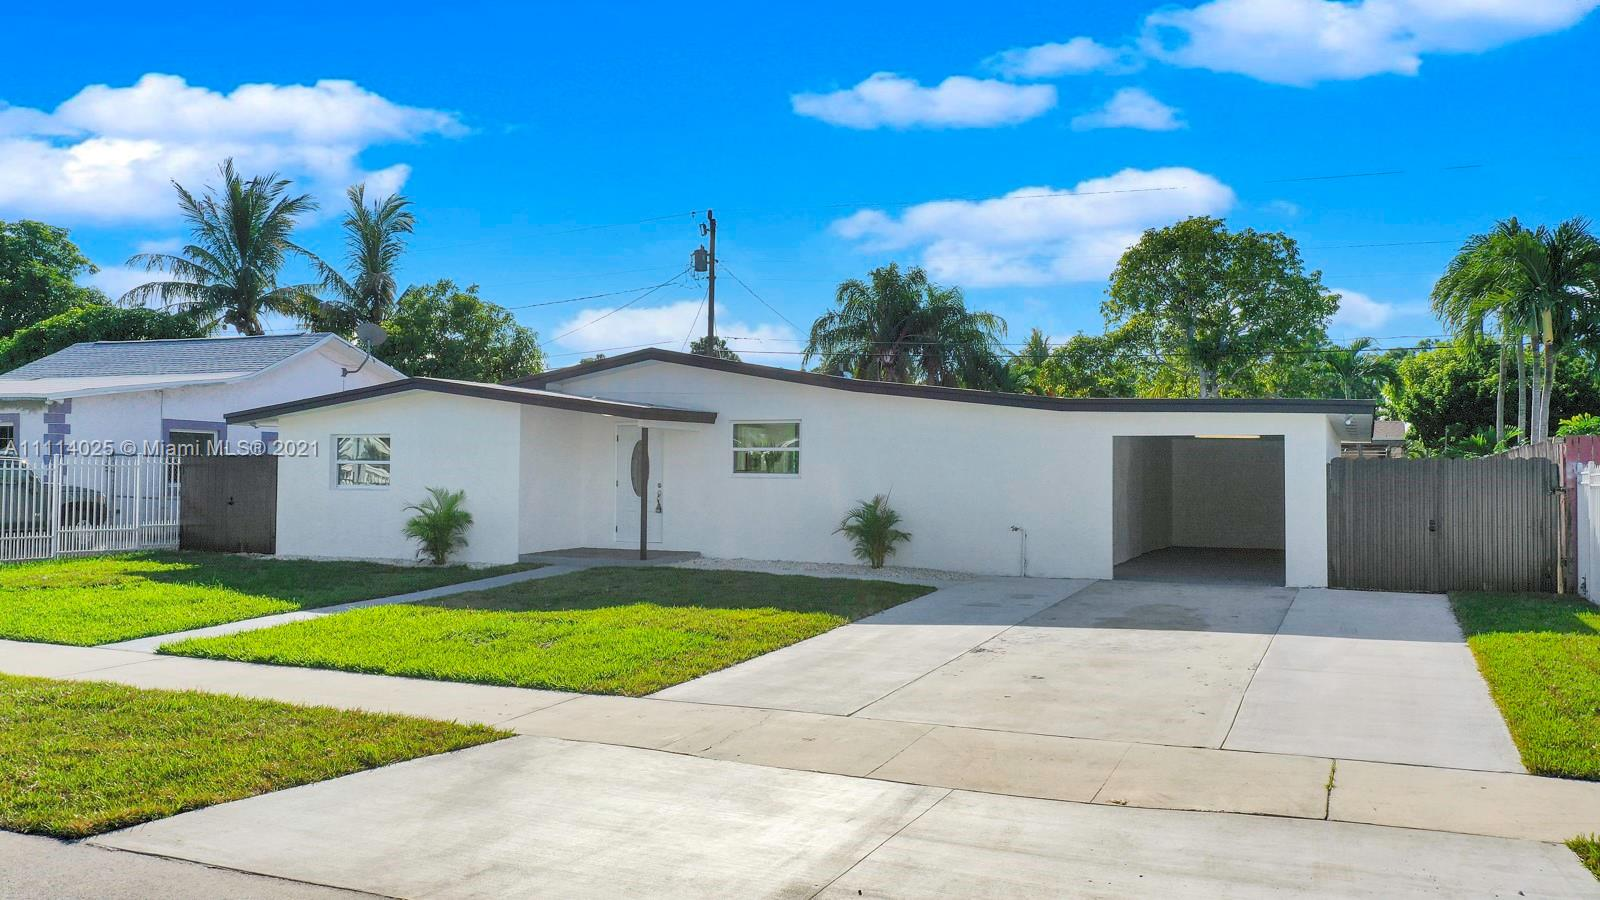 Single Family Home For Sale SO MIAMI HEIGHTS MANOR1,653 Sqft